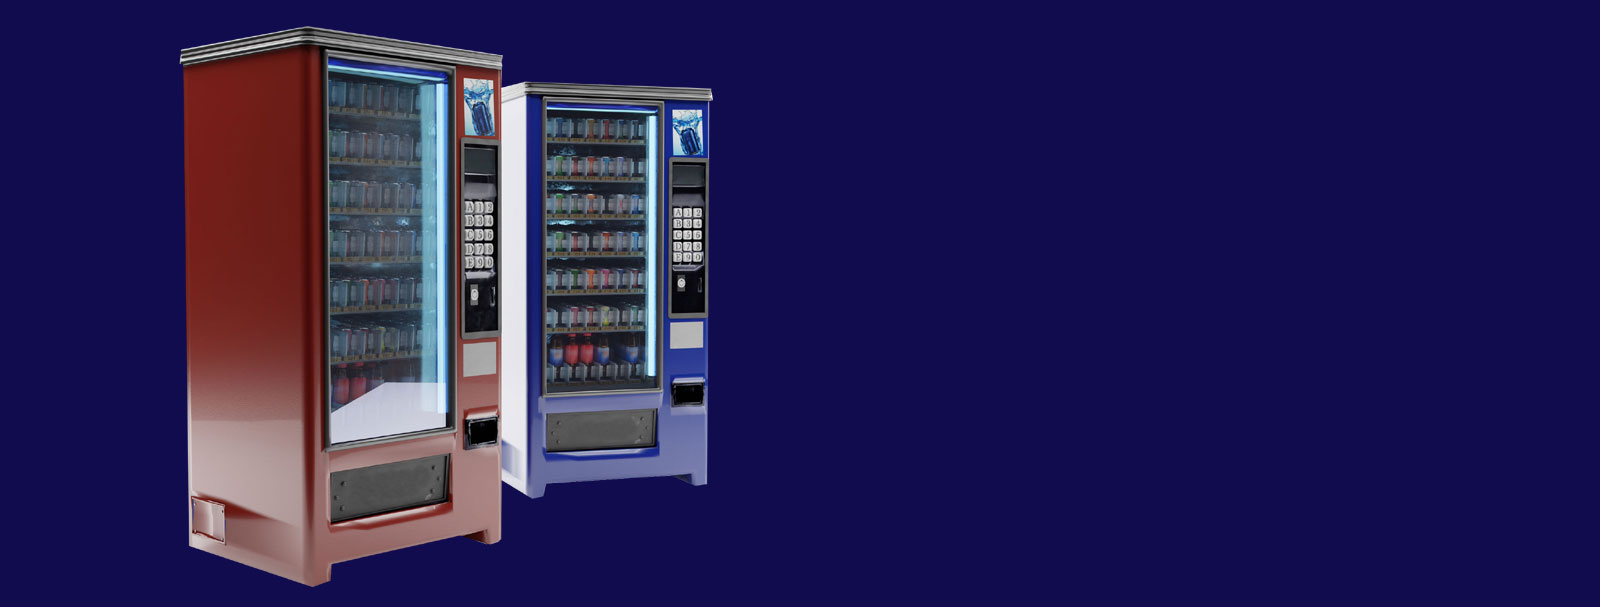 Vending Equipments, Machines